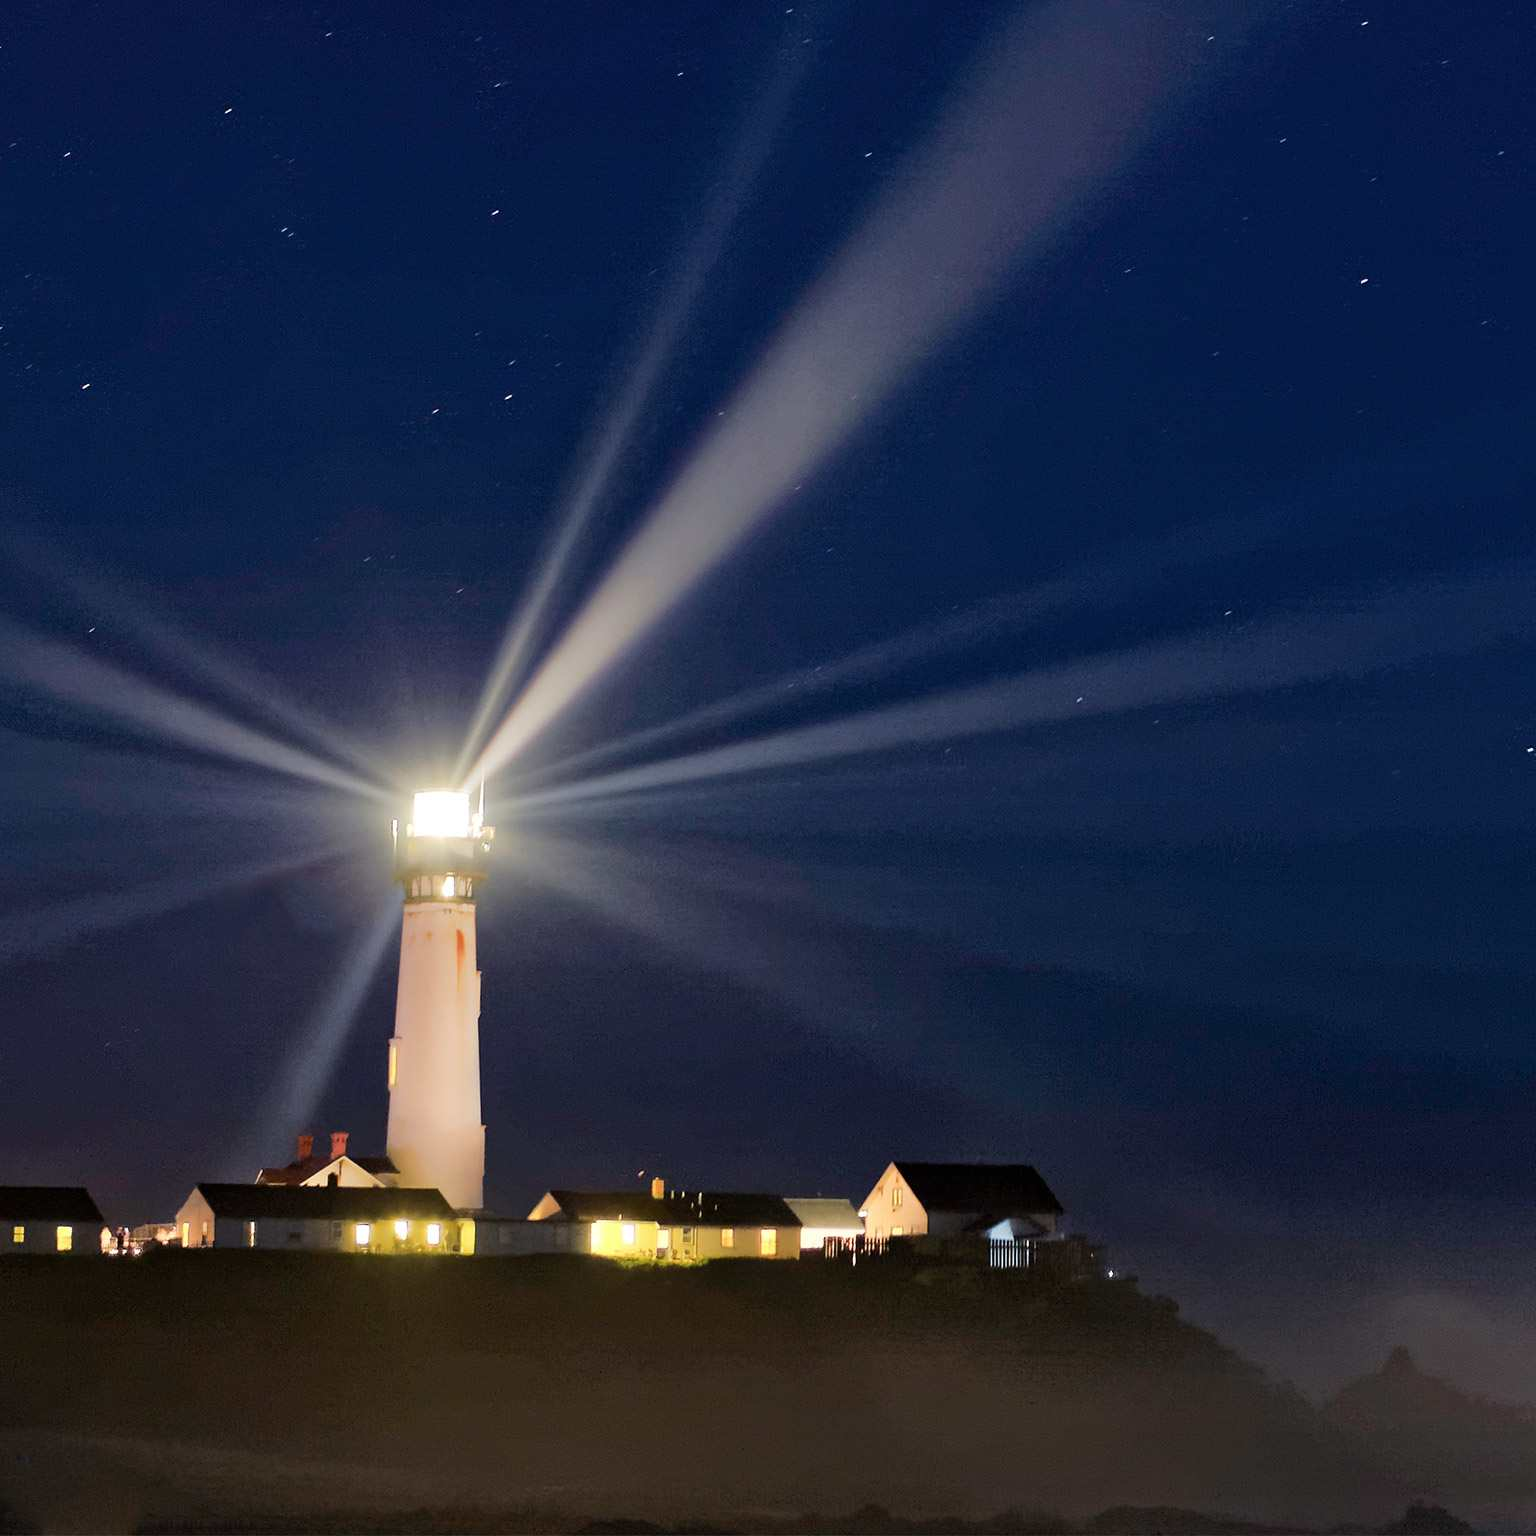 Phare - lighthouse - beacon of light